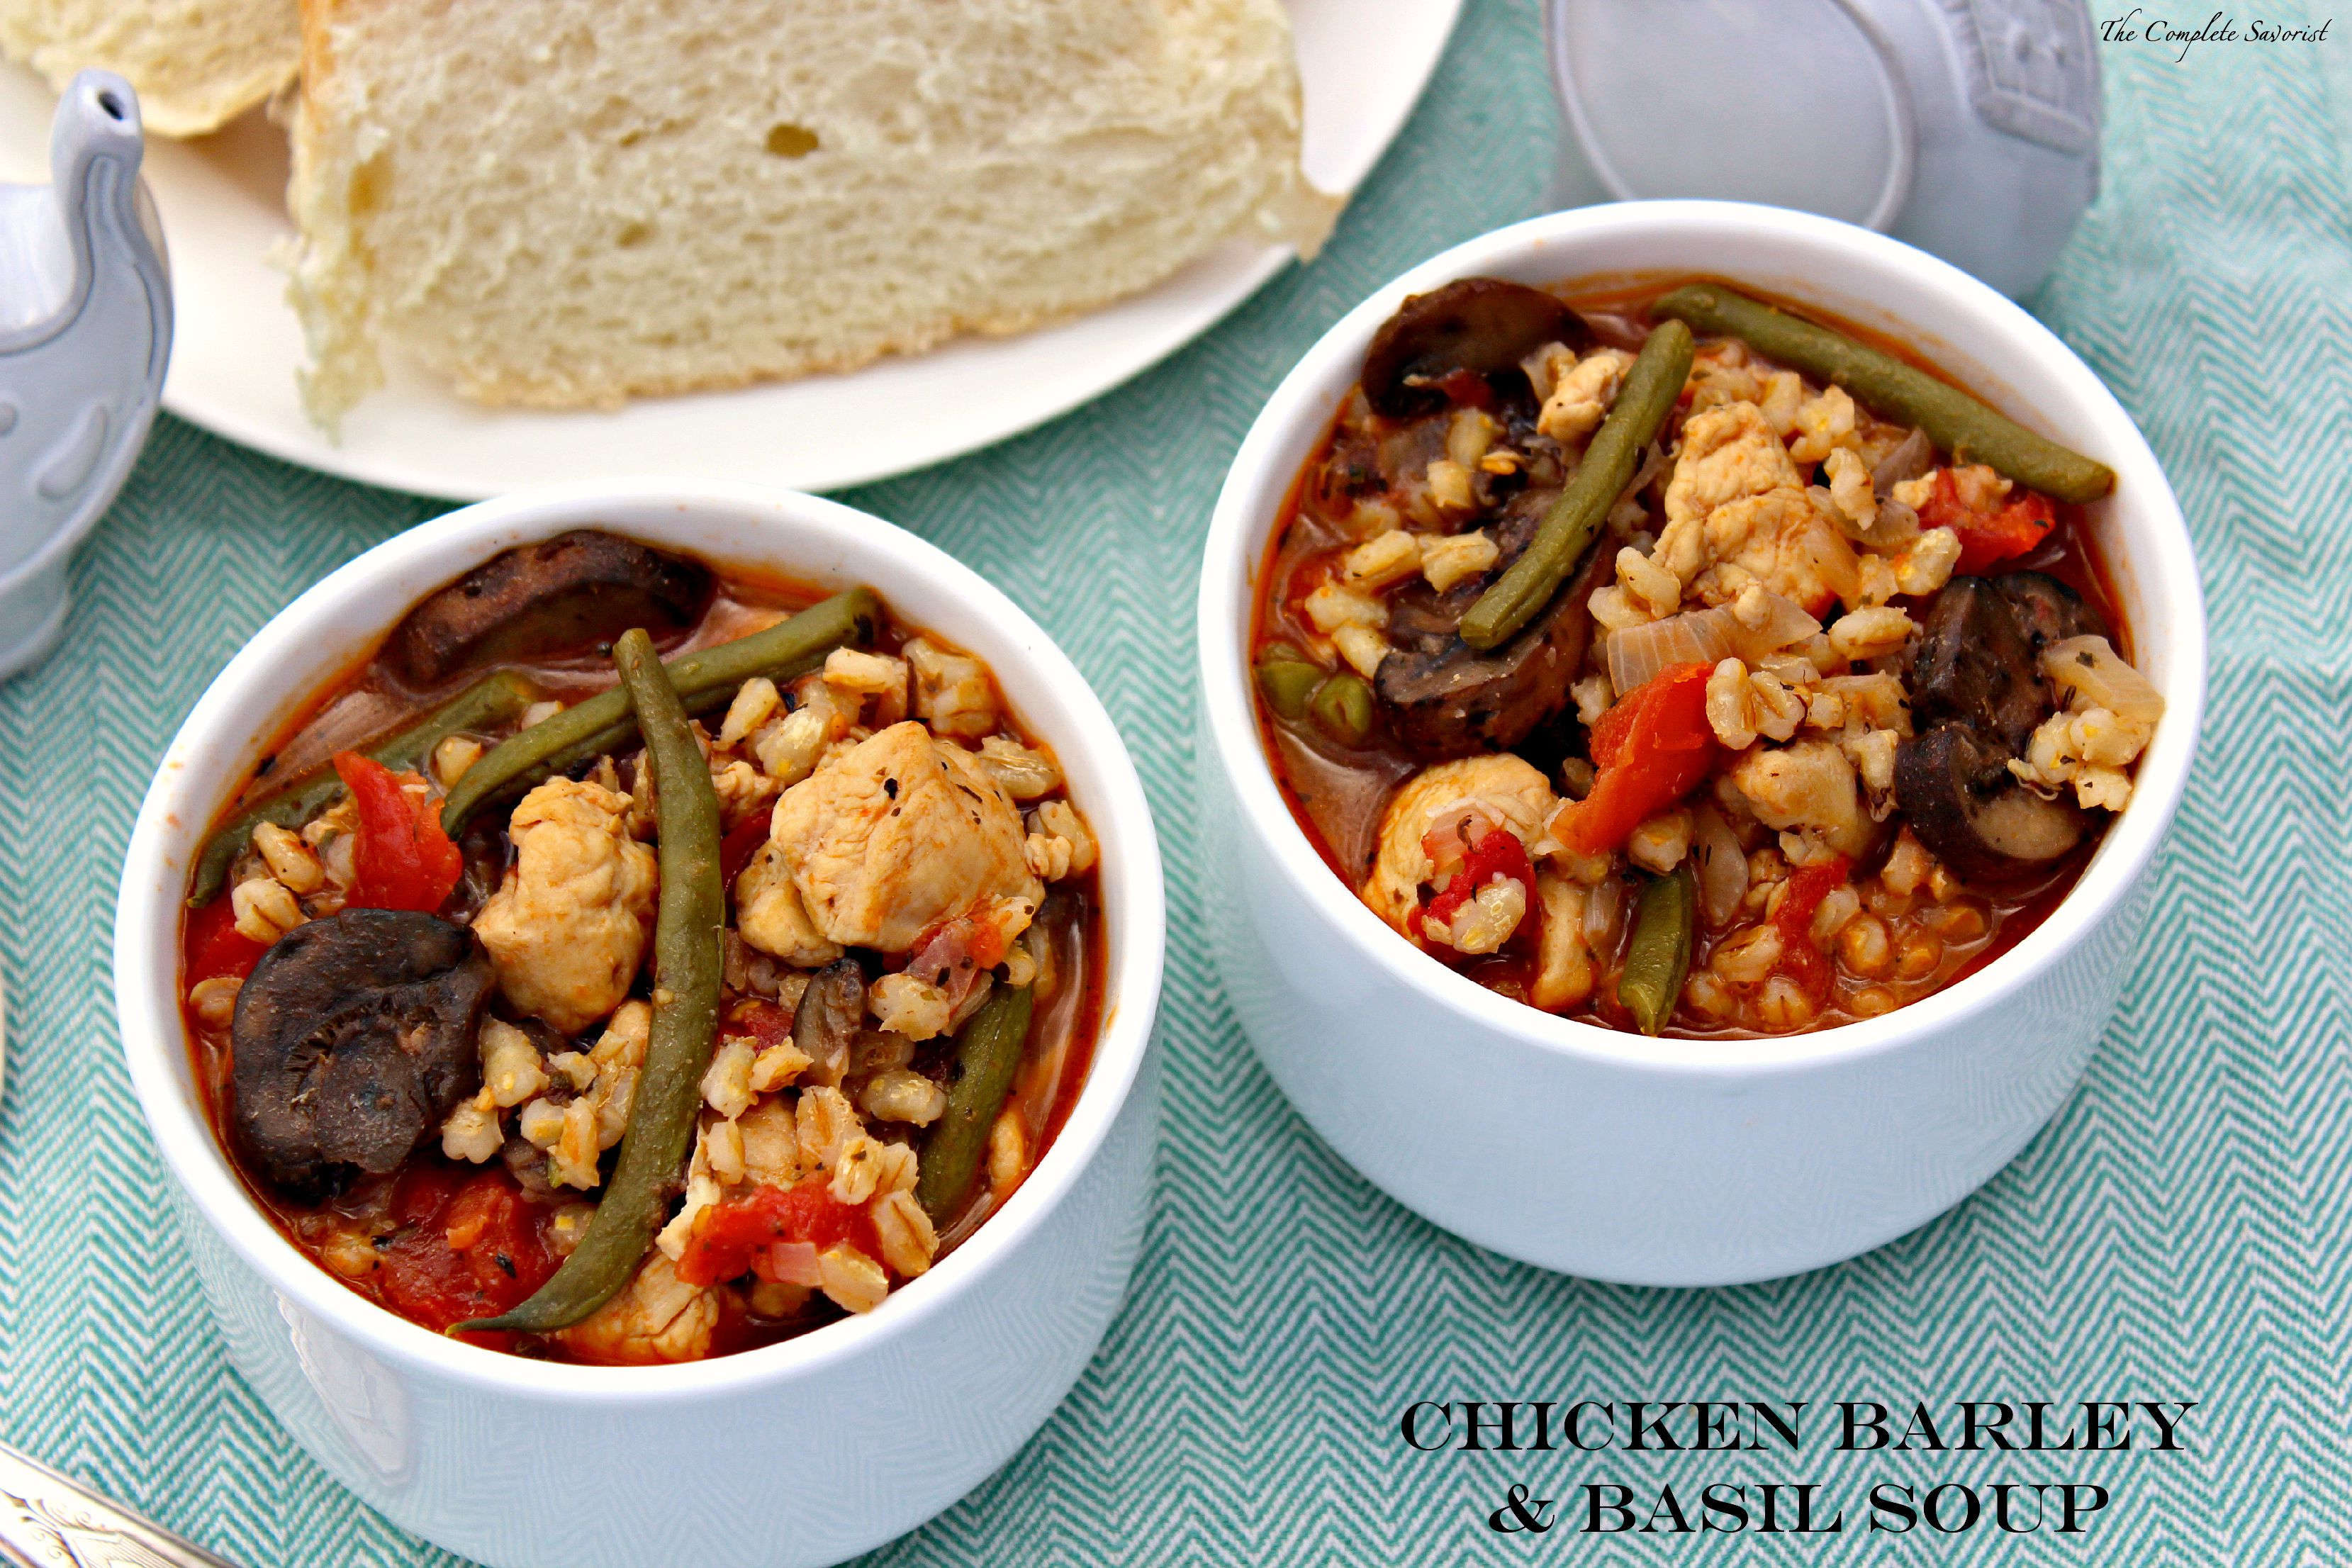 Chicken Barley and Basil Soup ~ The Complete Savorist